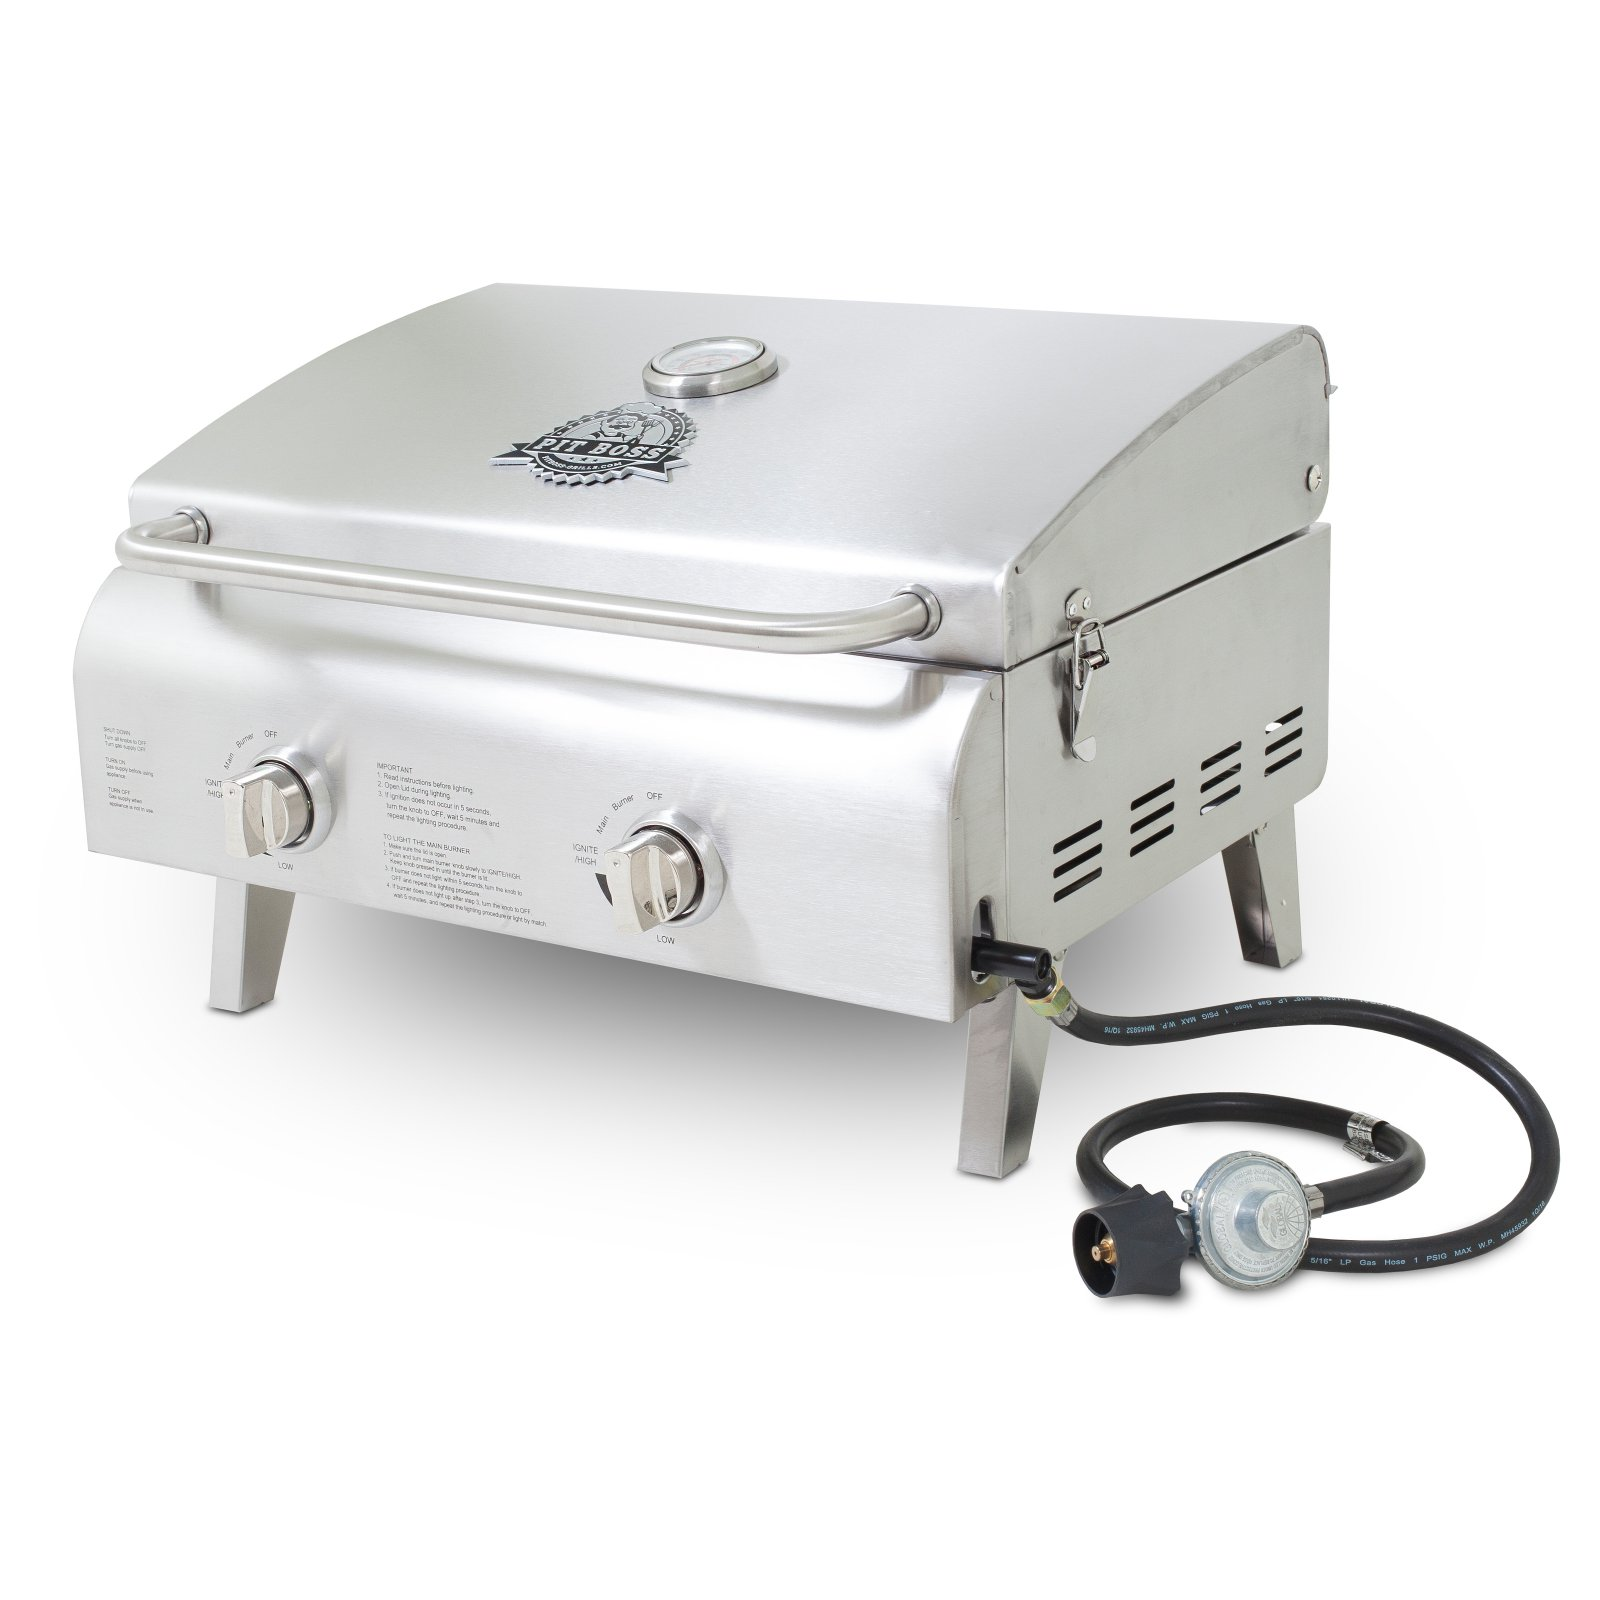 Pit Boss 2-Burner Portable LP Gas Grill, Stainless Steel by Dansons Inc.